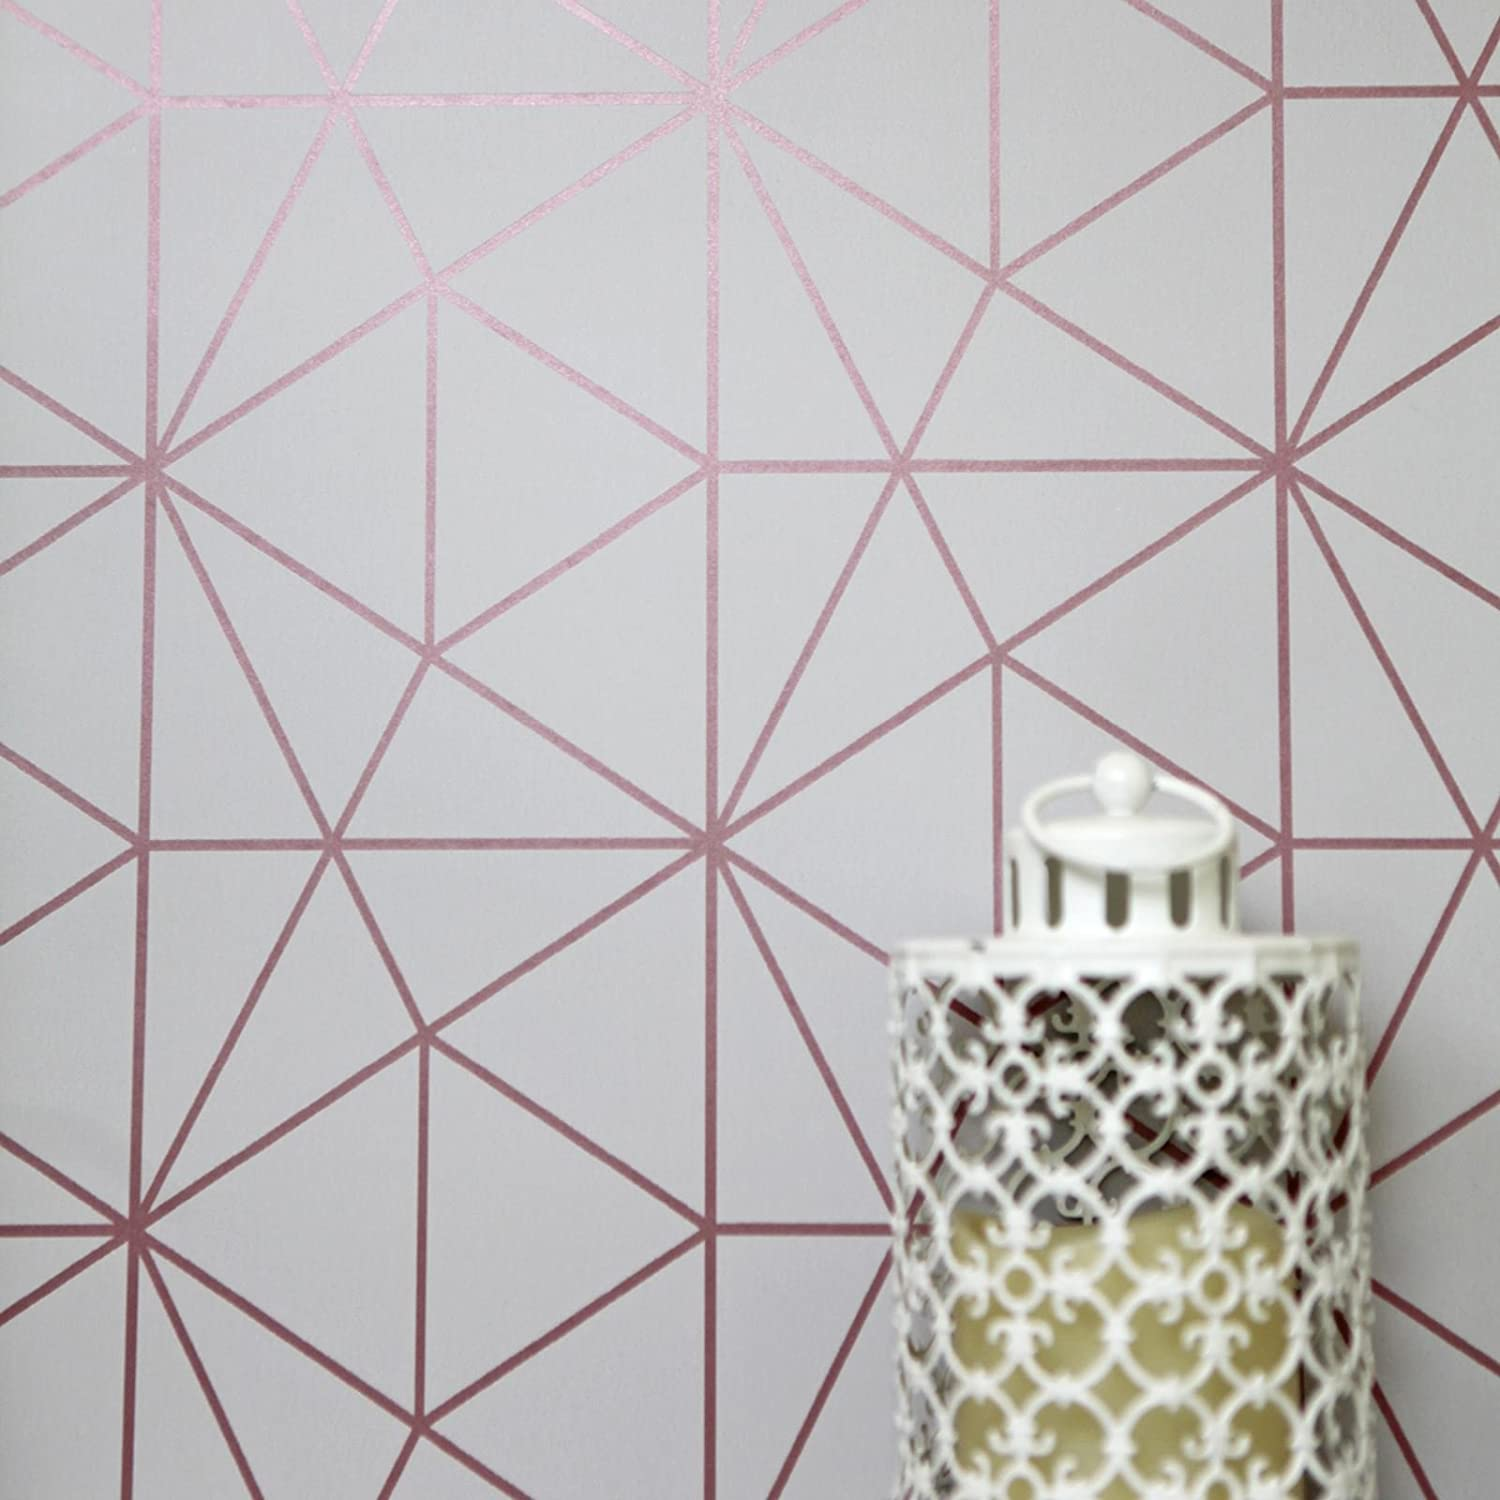 Metro / Grau und Ros/égold / WOW009 World of Wallpaper Tapete/ mit geometrische Dreiecken